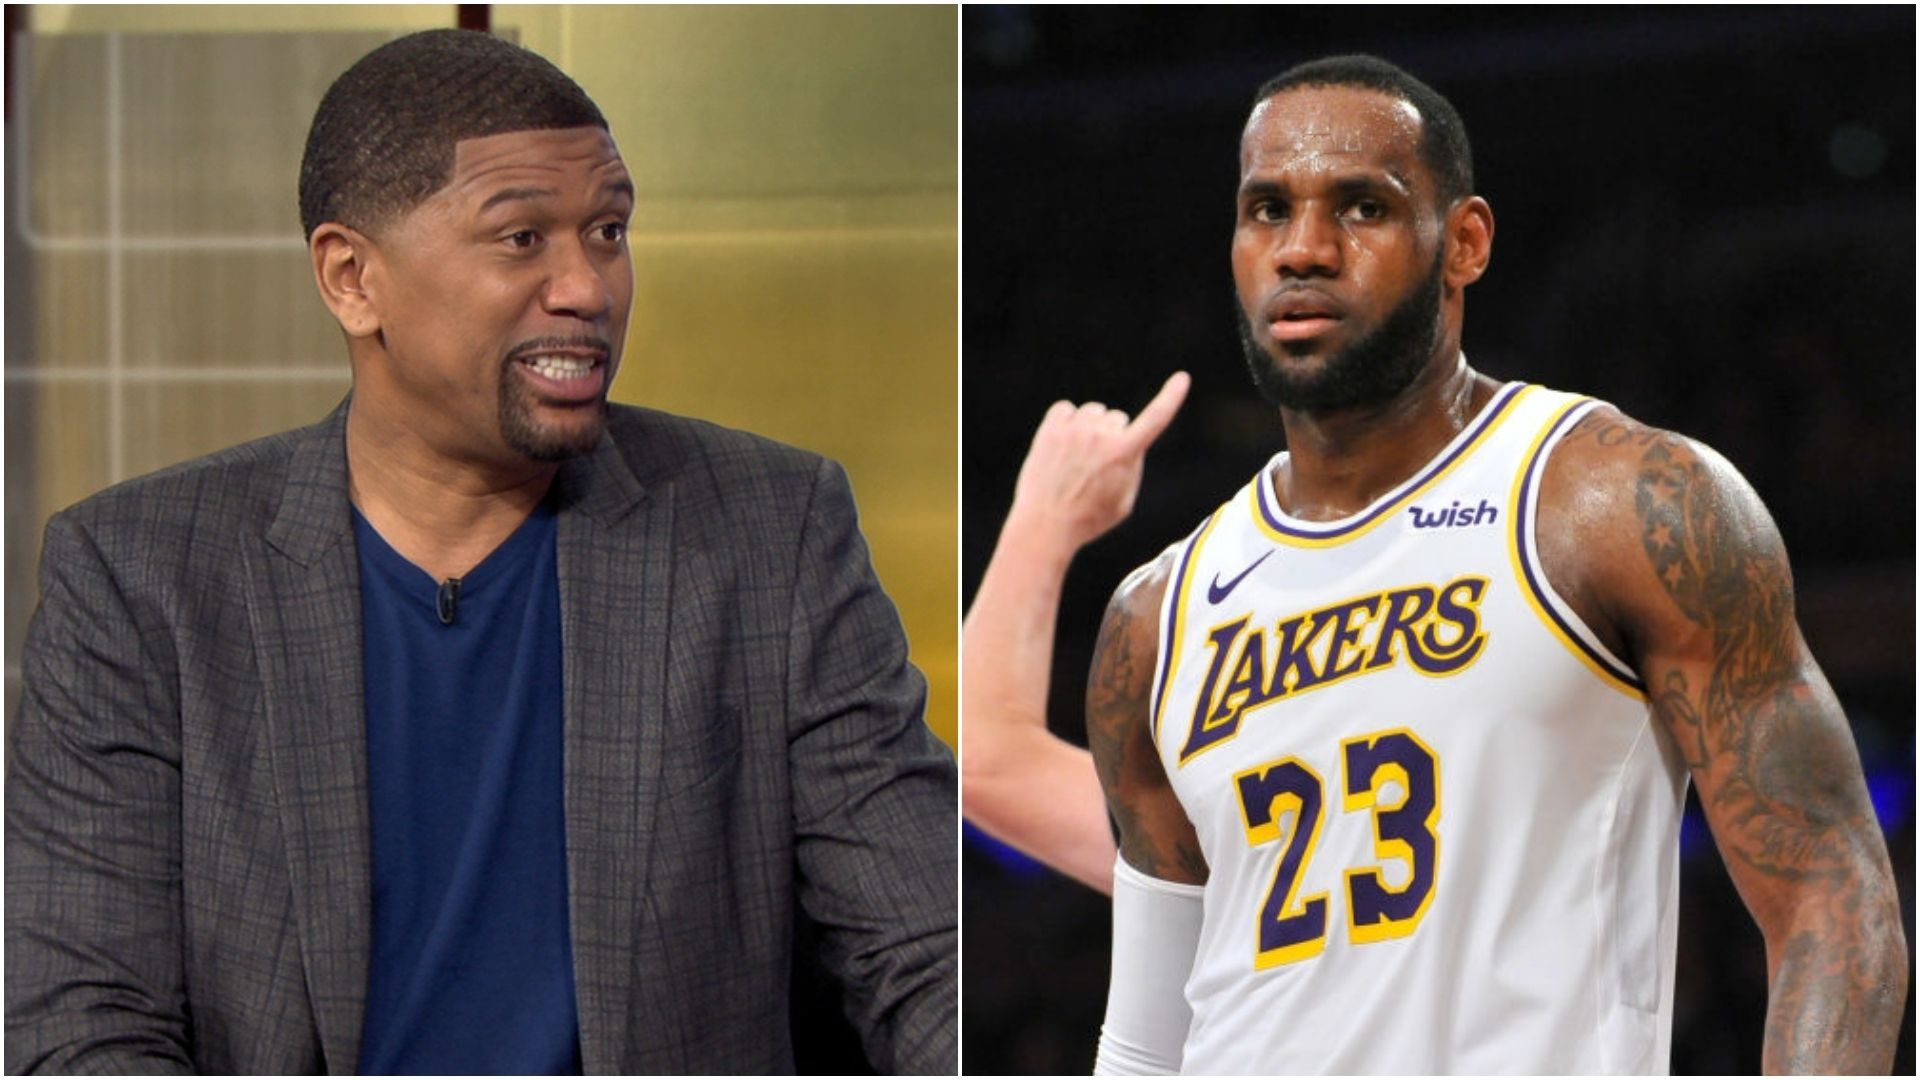 Is LeBron's relationship with Lakers repairable?